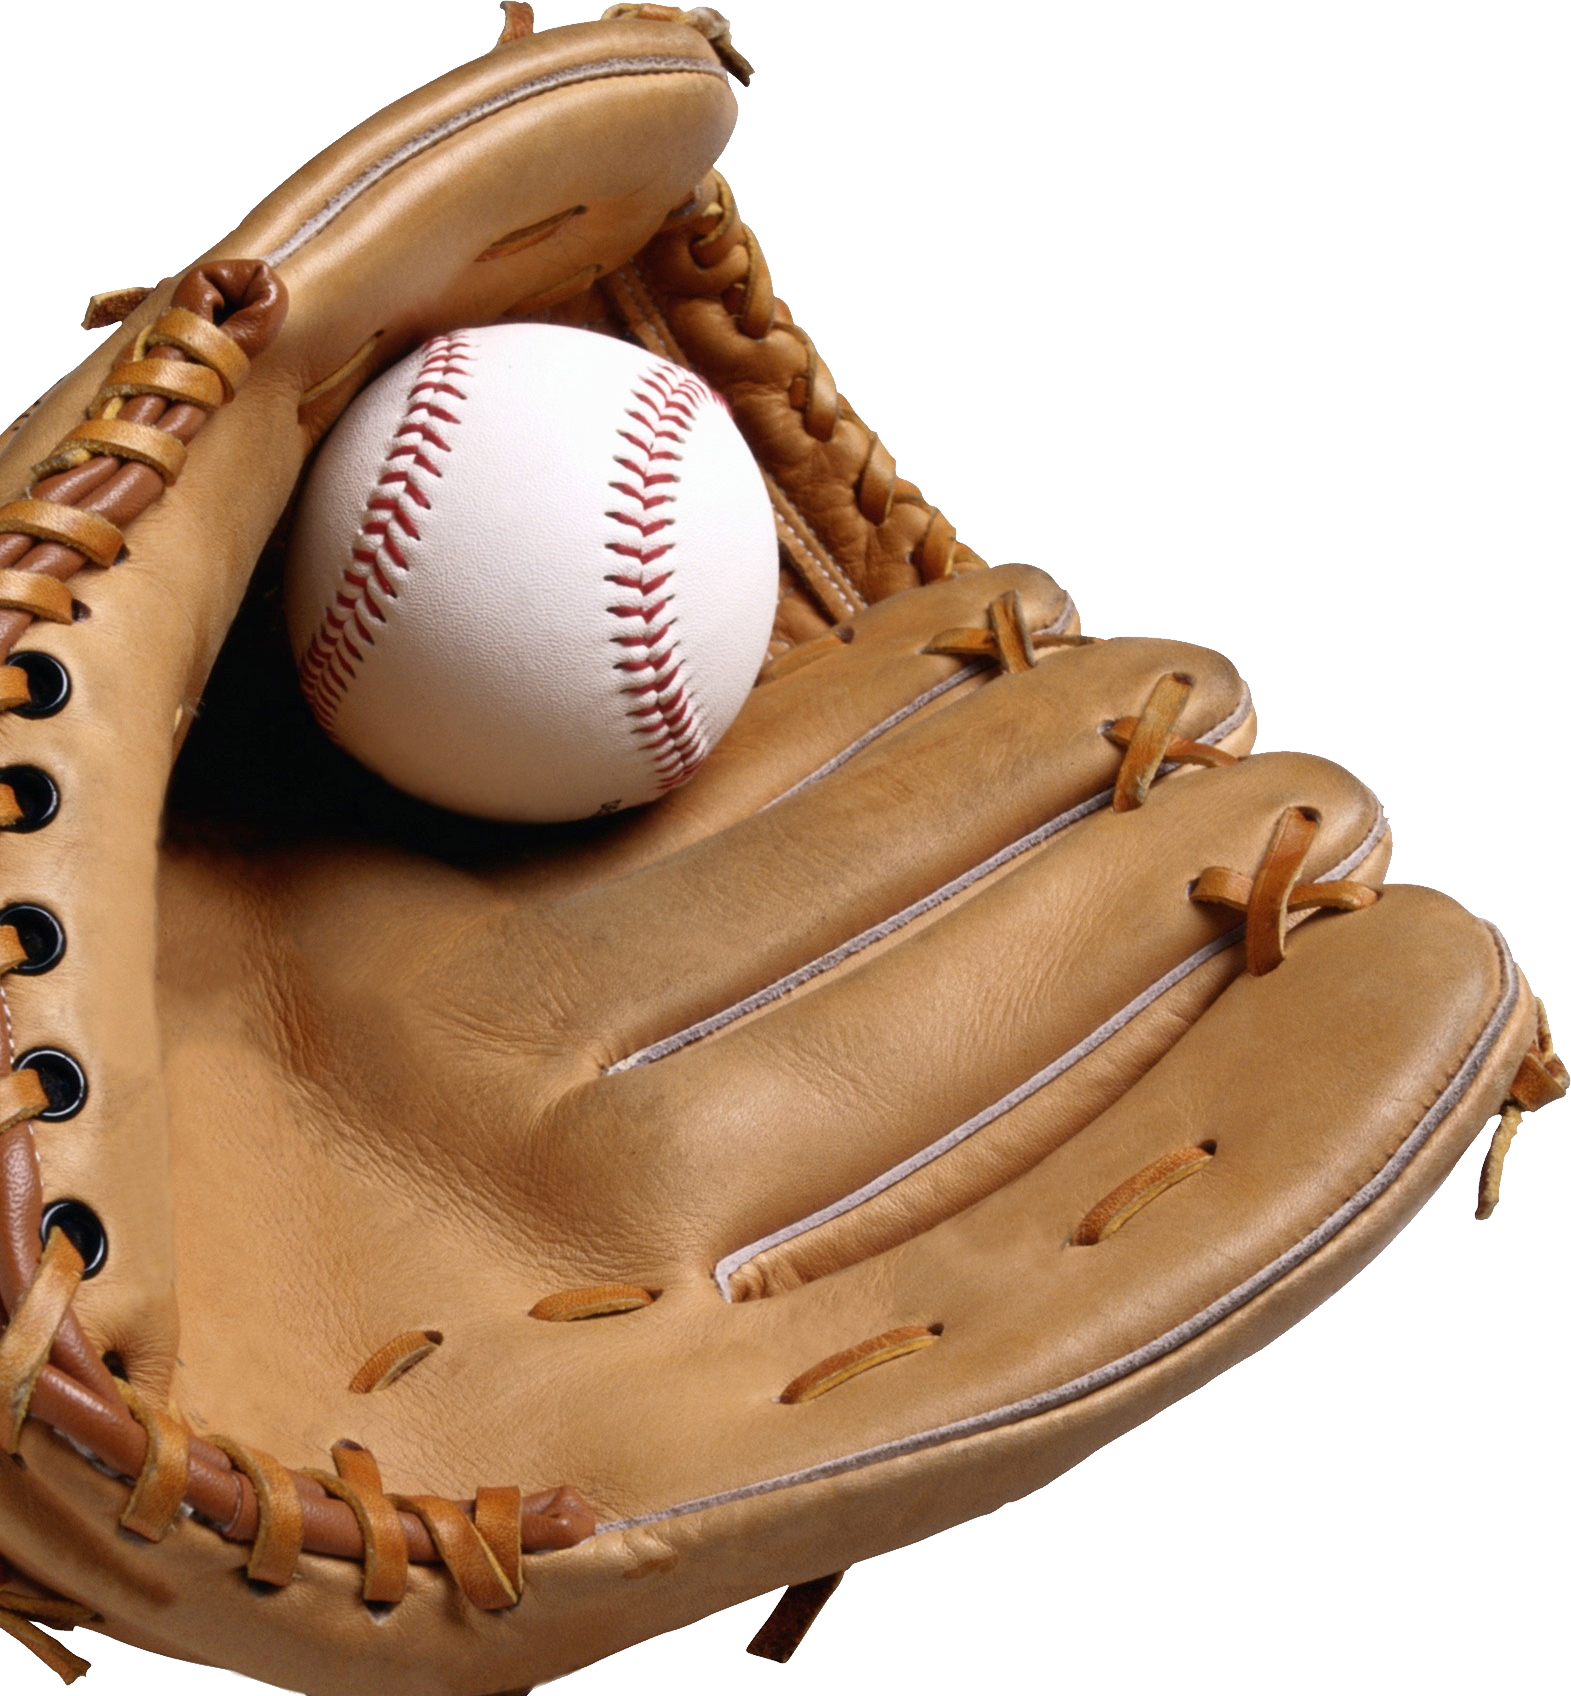 Clipart of baseball glove graphic freeuse download Baseball Gloves PNG Image - PurePNG | Free transparent CC0 PNG Image ... graphic freeuse download